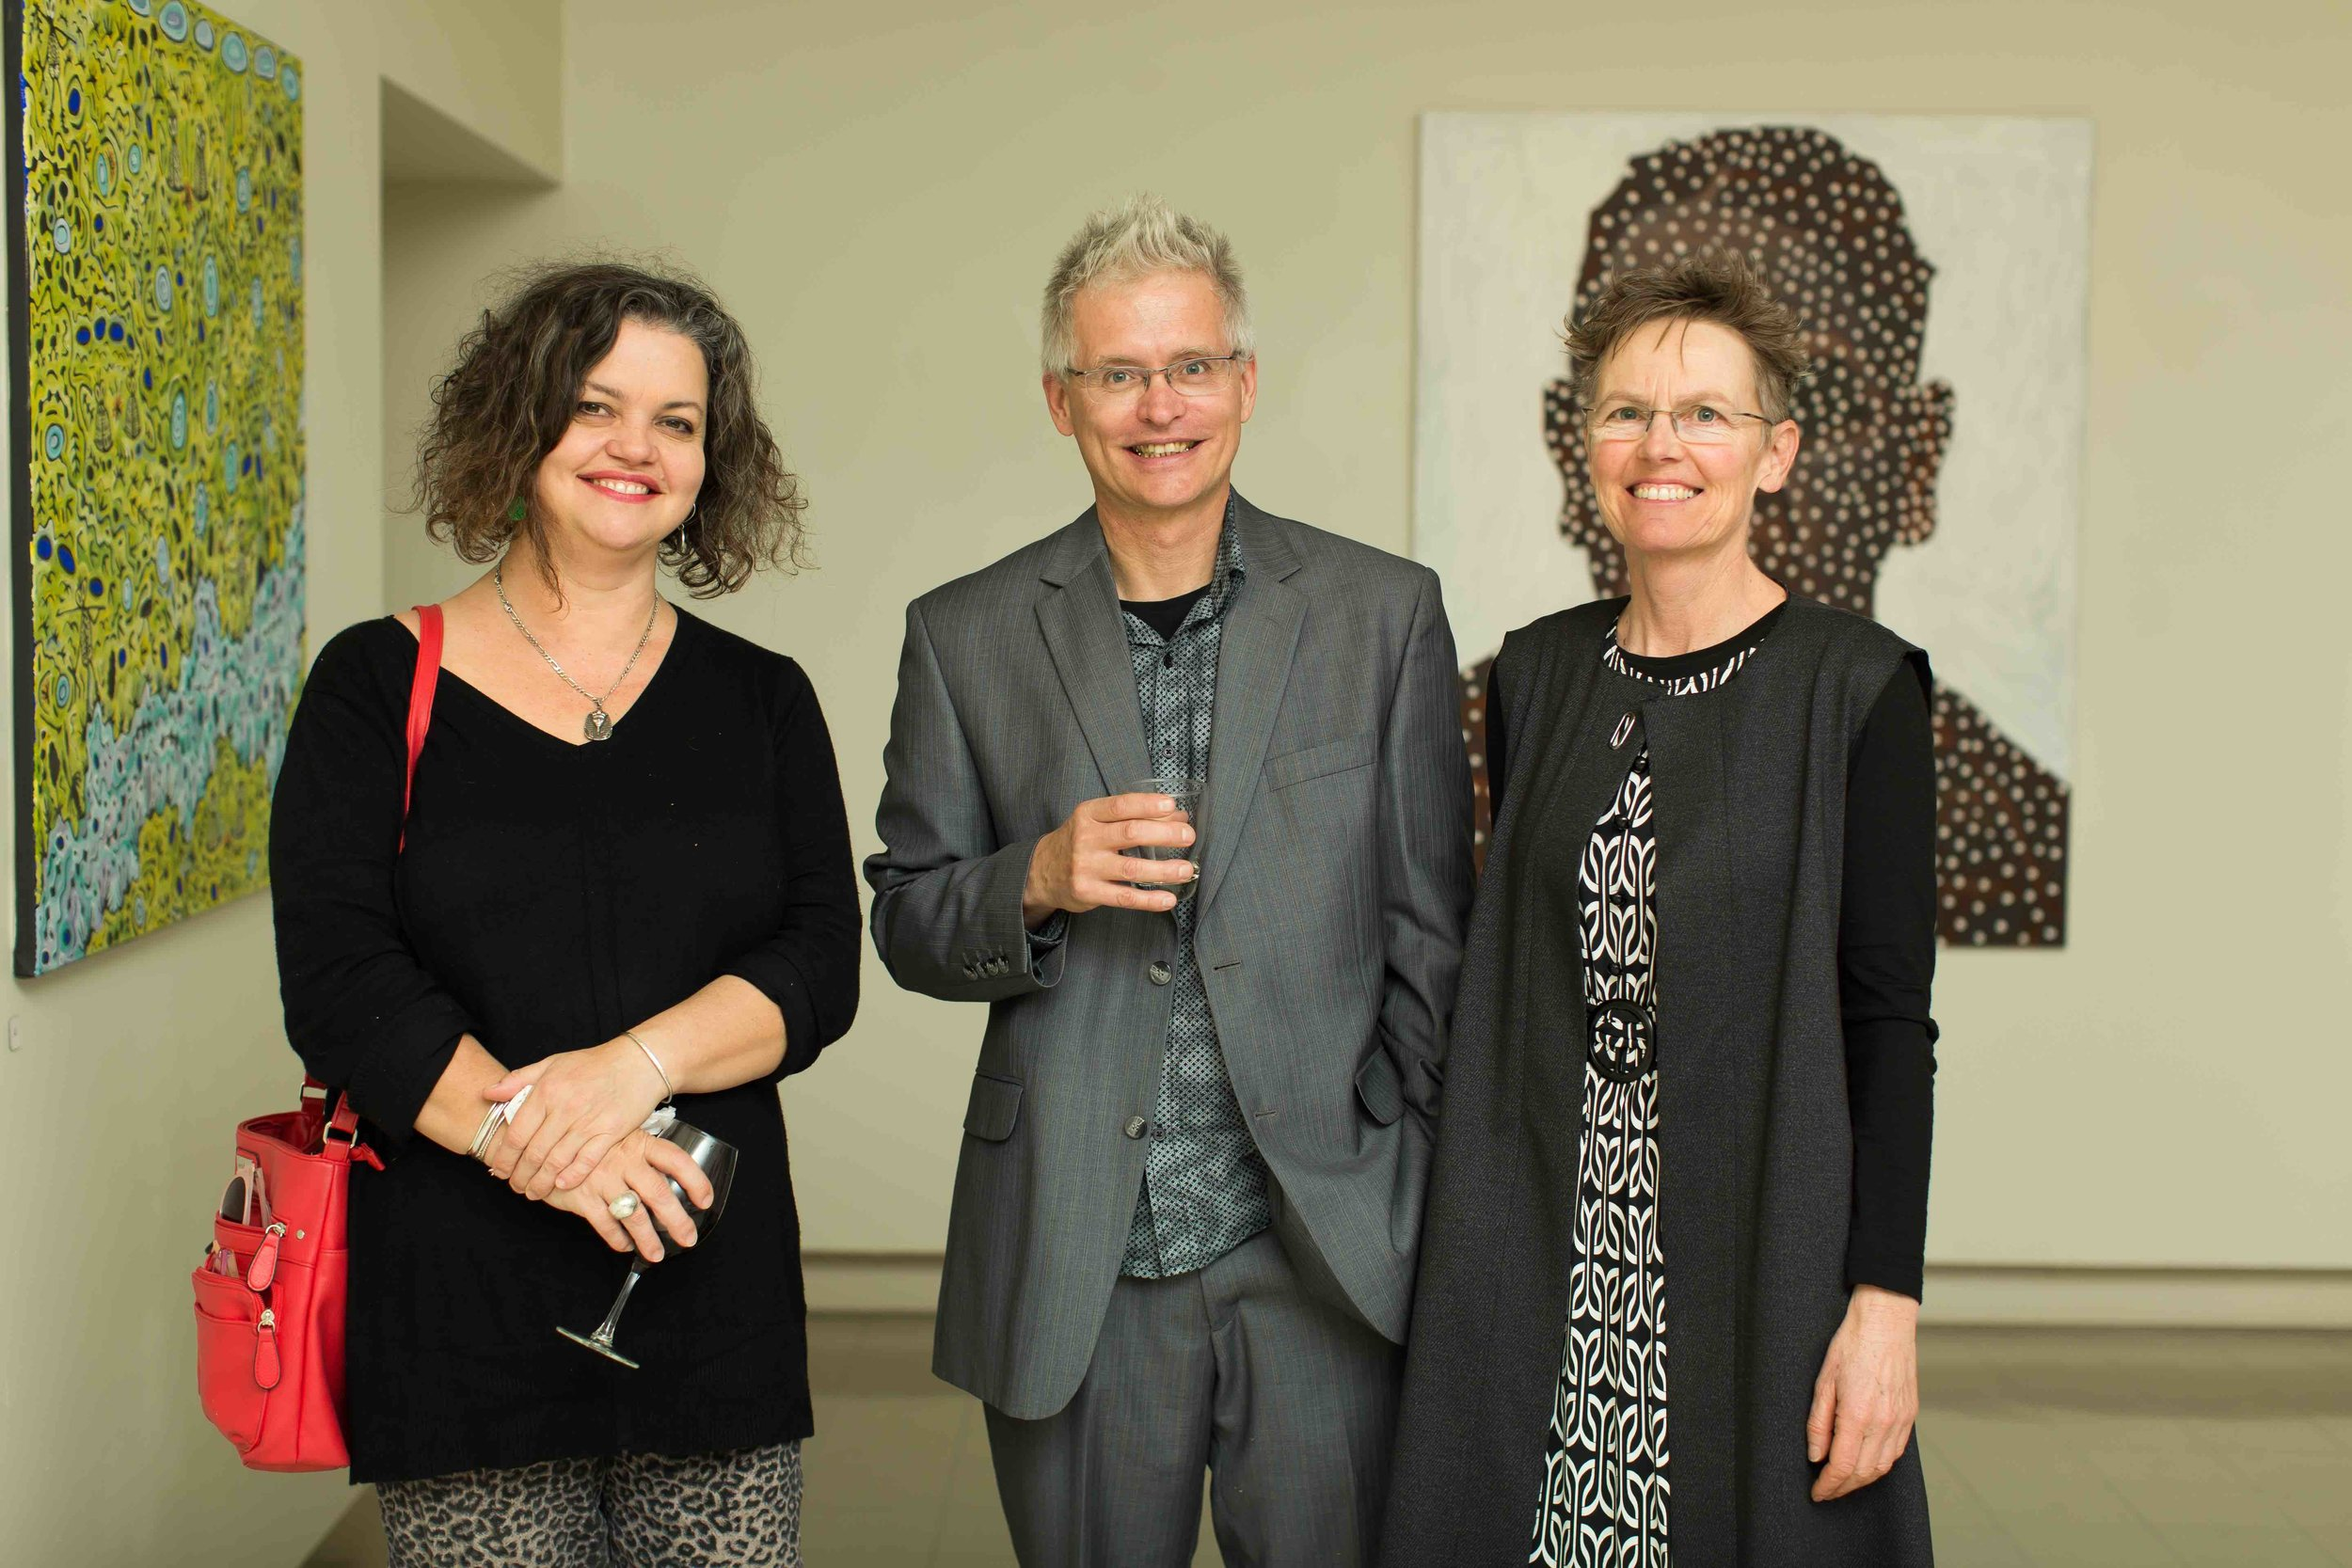 Alexandrina Council's Leah Grace (left), with co-curators Carl Kuddell and Jen Lyons-Reid. Photo Johanis Lyons-Reid / Change Media